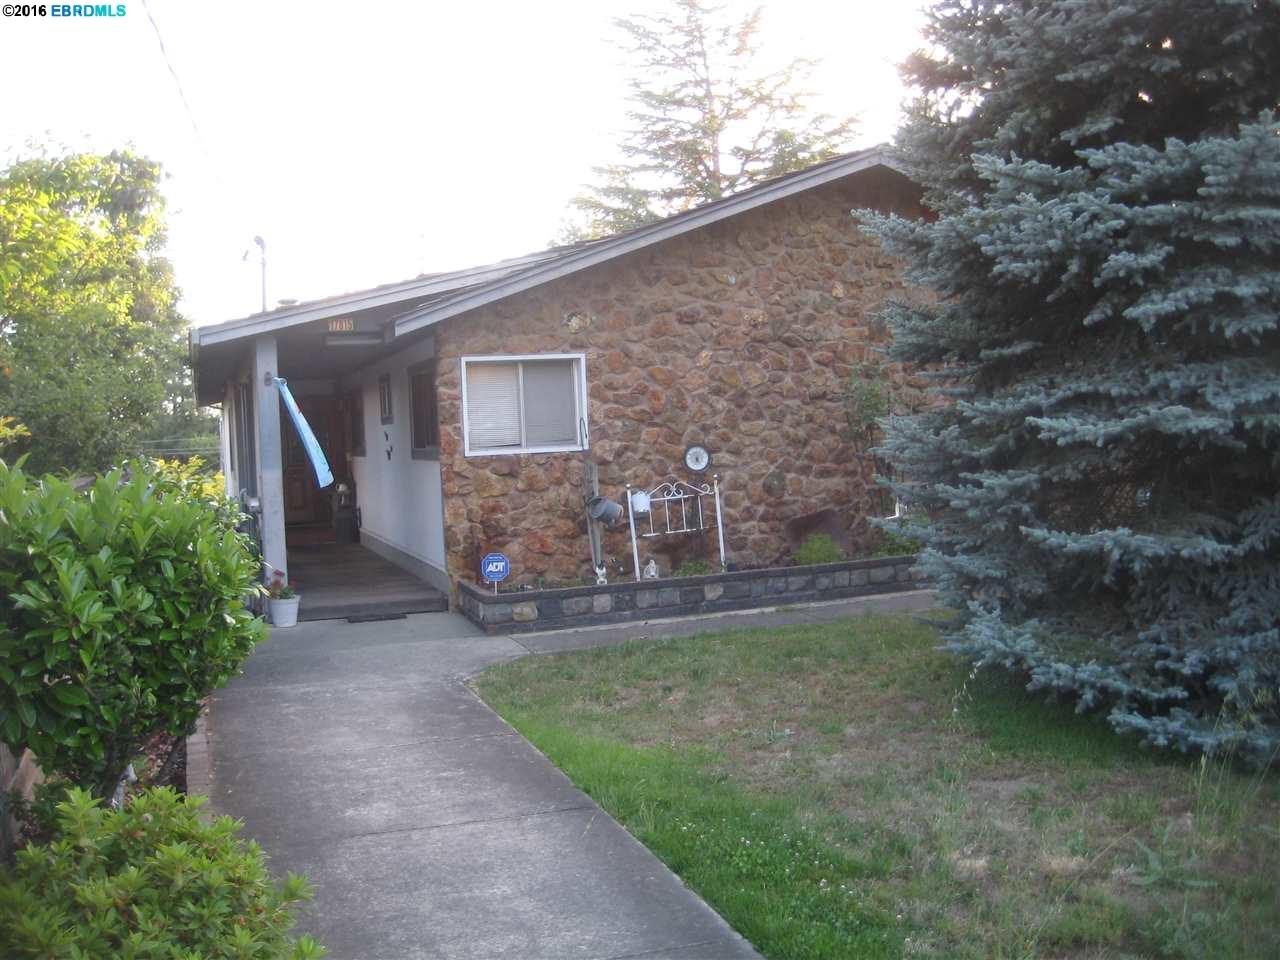 17815 ALMOND RD, CASTRO VALLEY, CA 94546